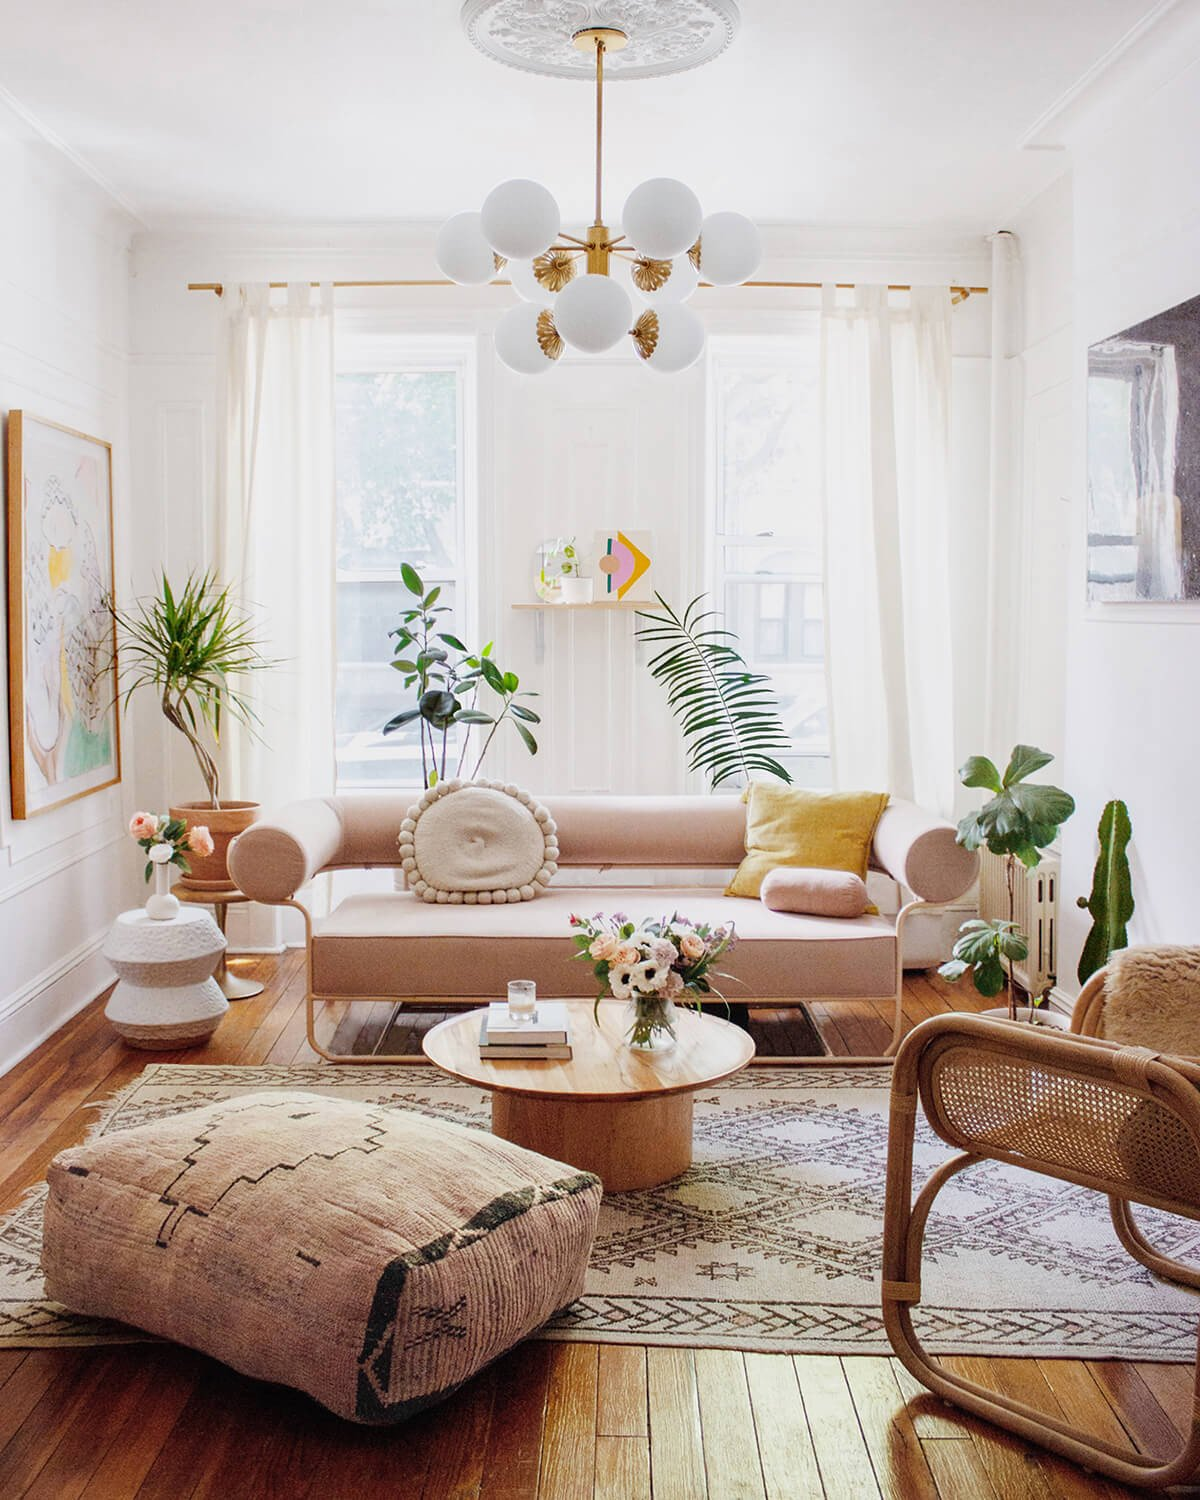 Small Apartment Living Room Decor 20 Best Small Apartment Living Room Decor and Design Ideas